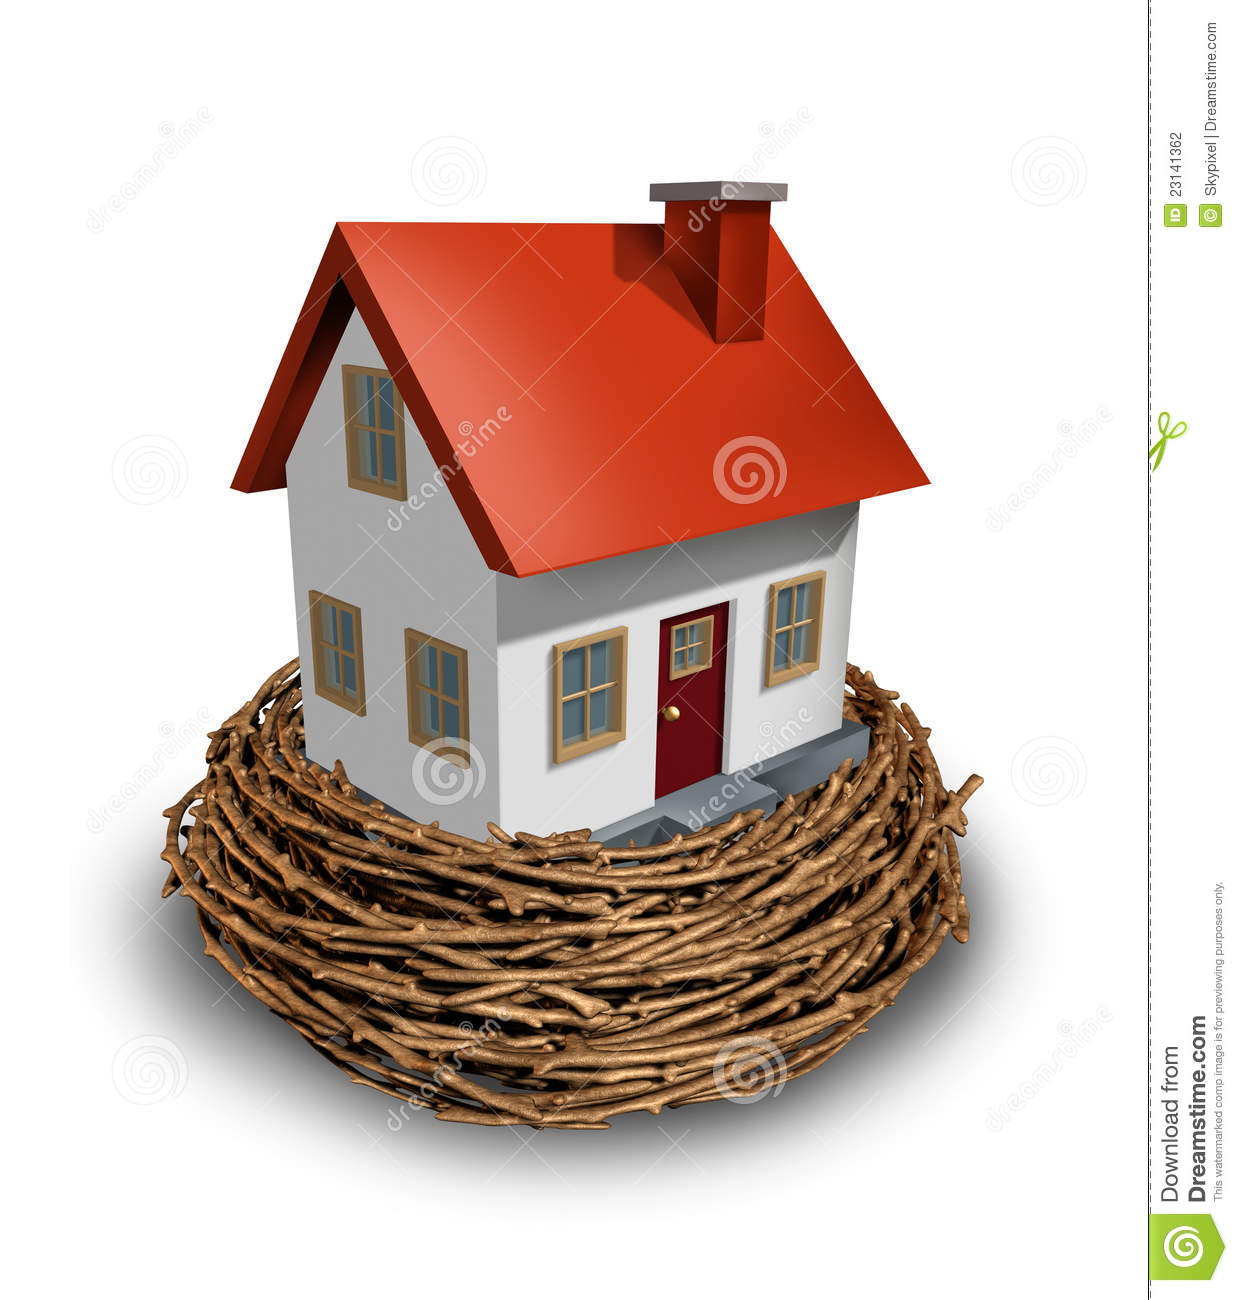 Home investering